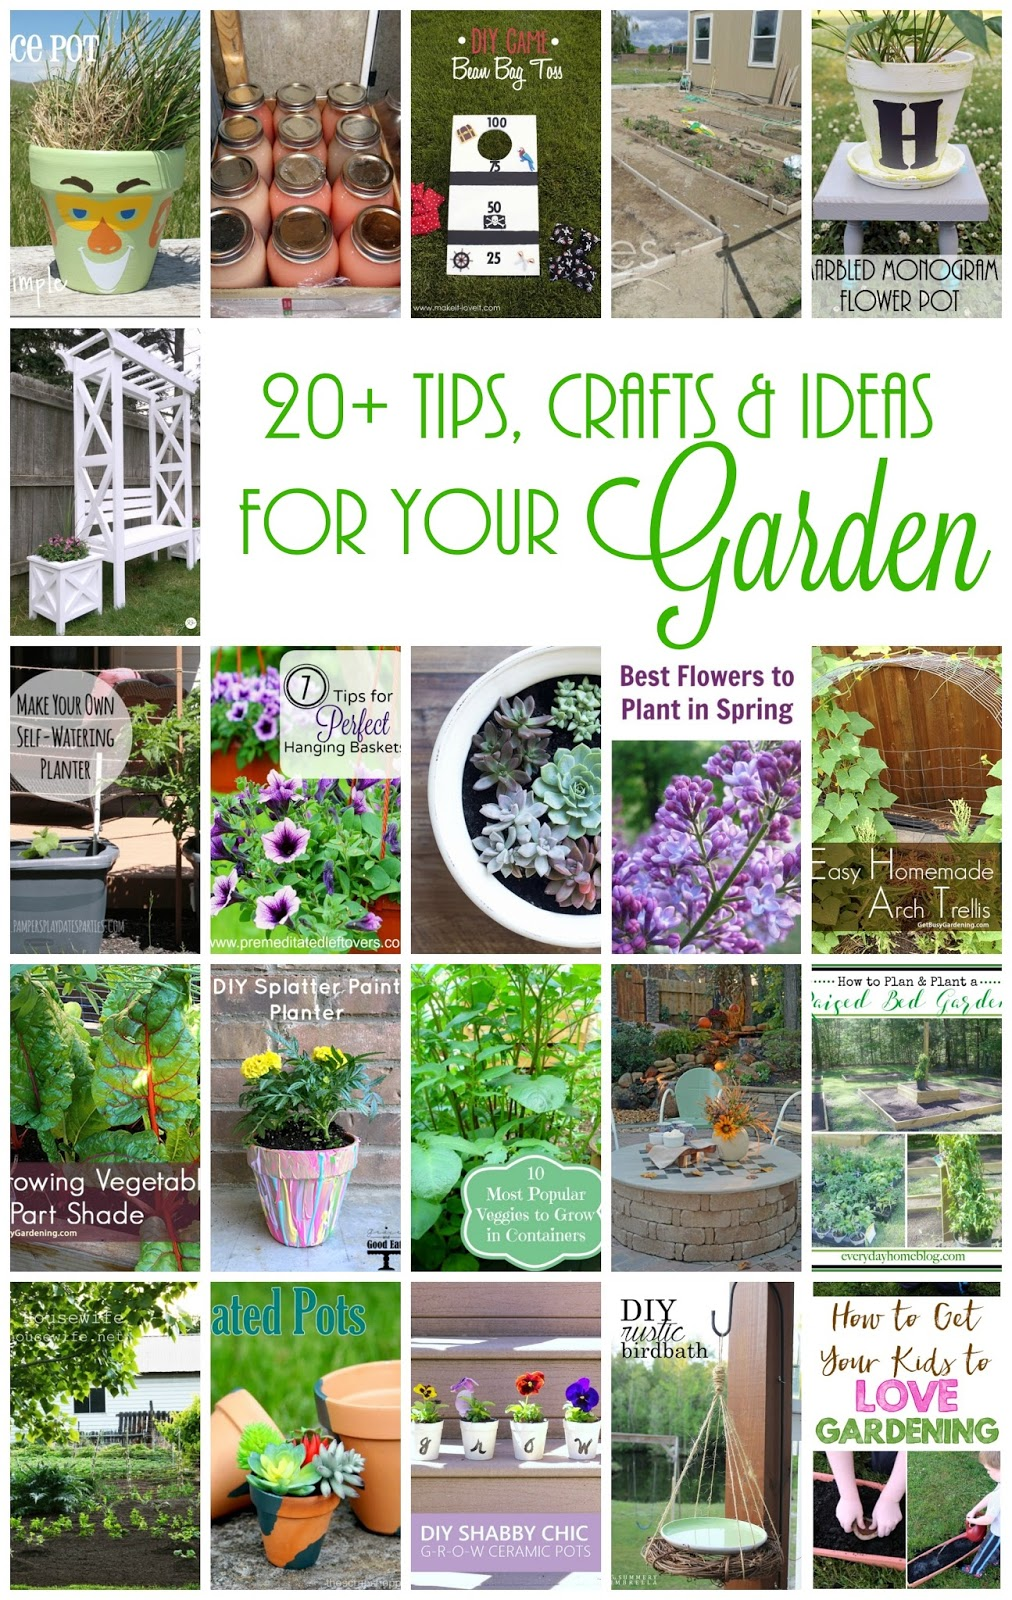 20 + Outdoor ideas, crafts and tips for your garden and yard.